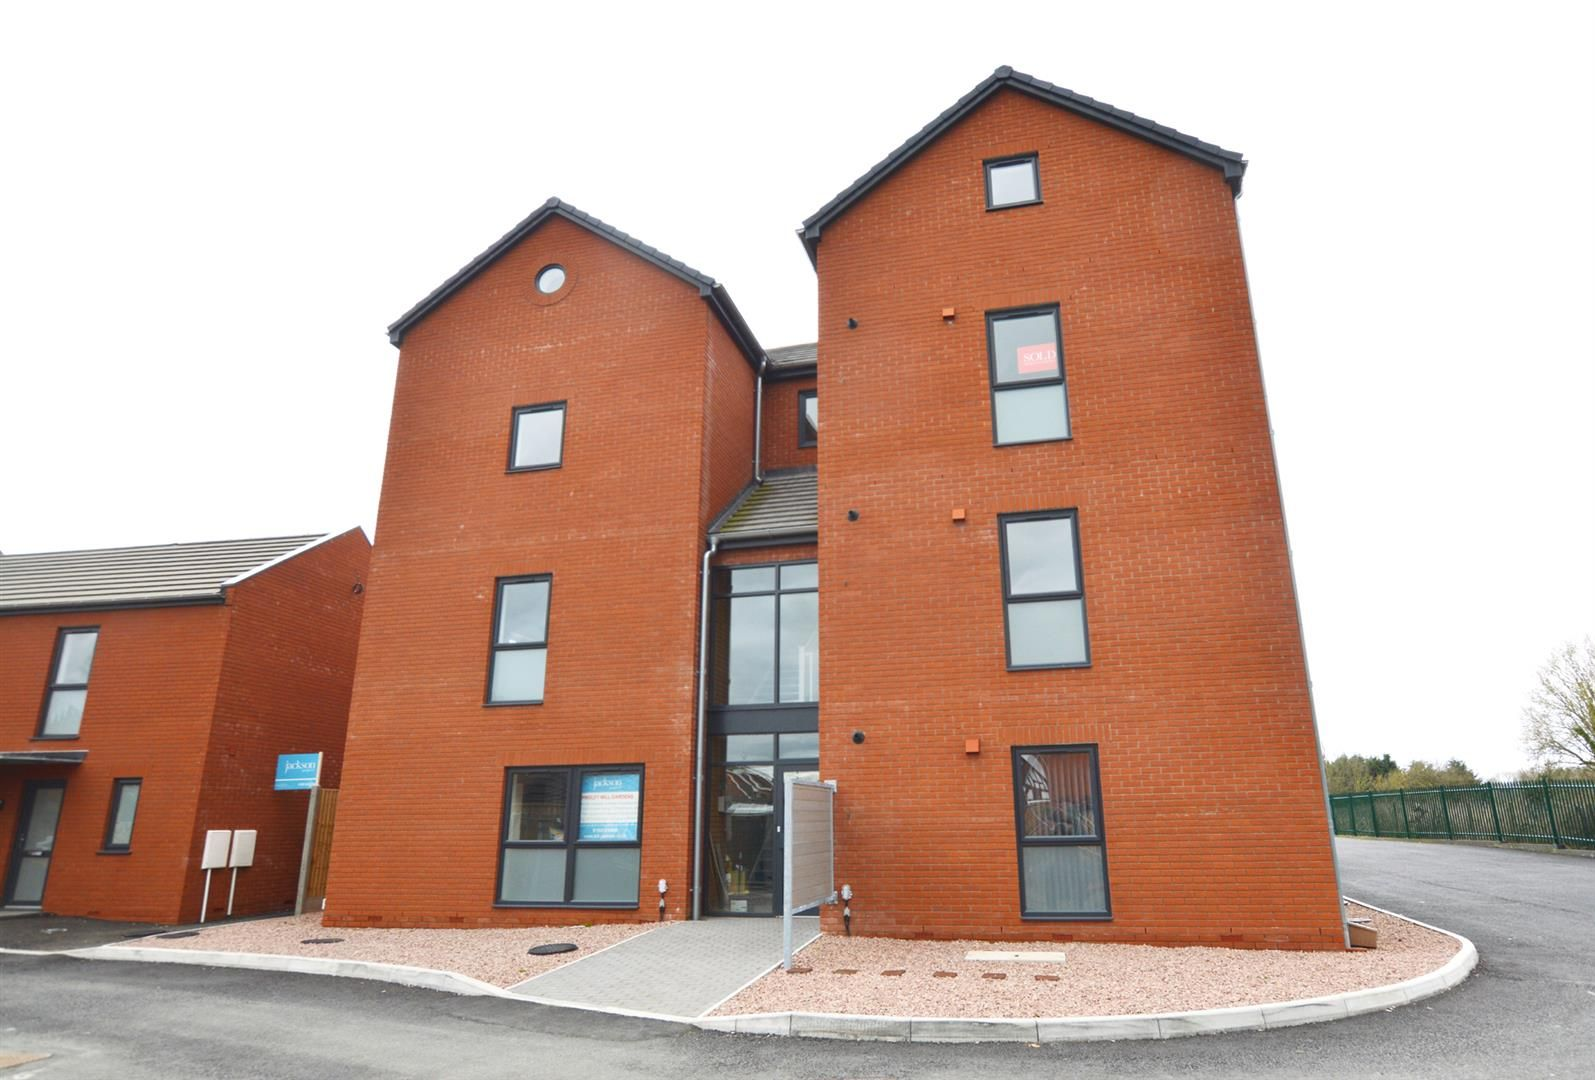 1 bed apartment for sale in Leominster 1